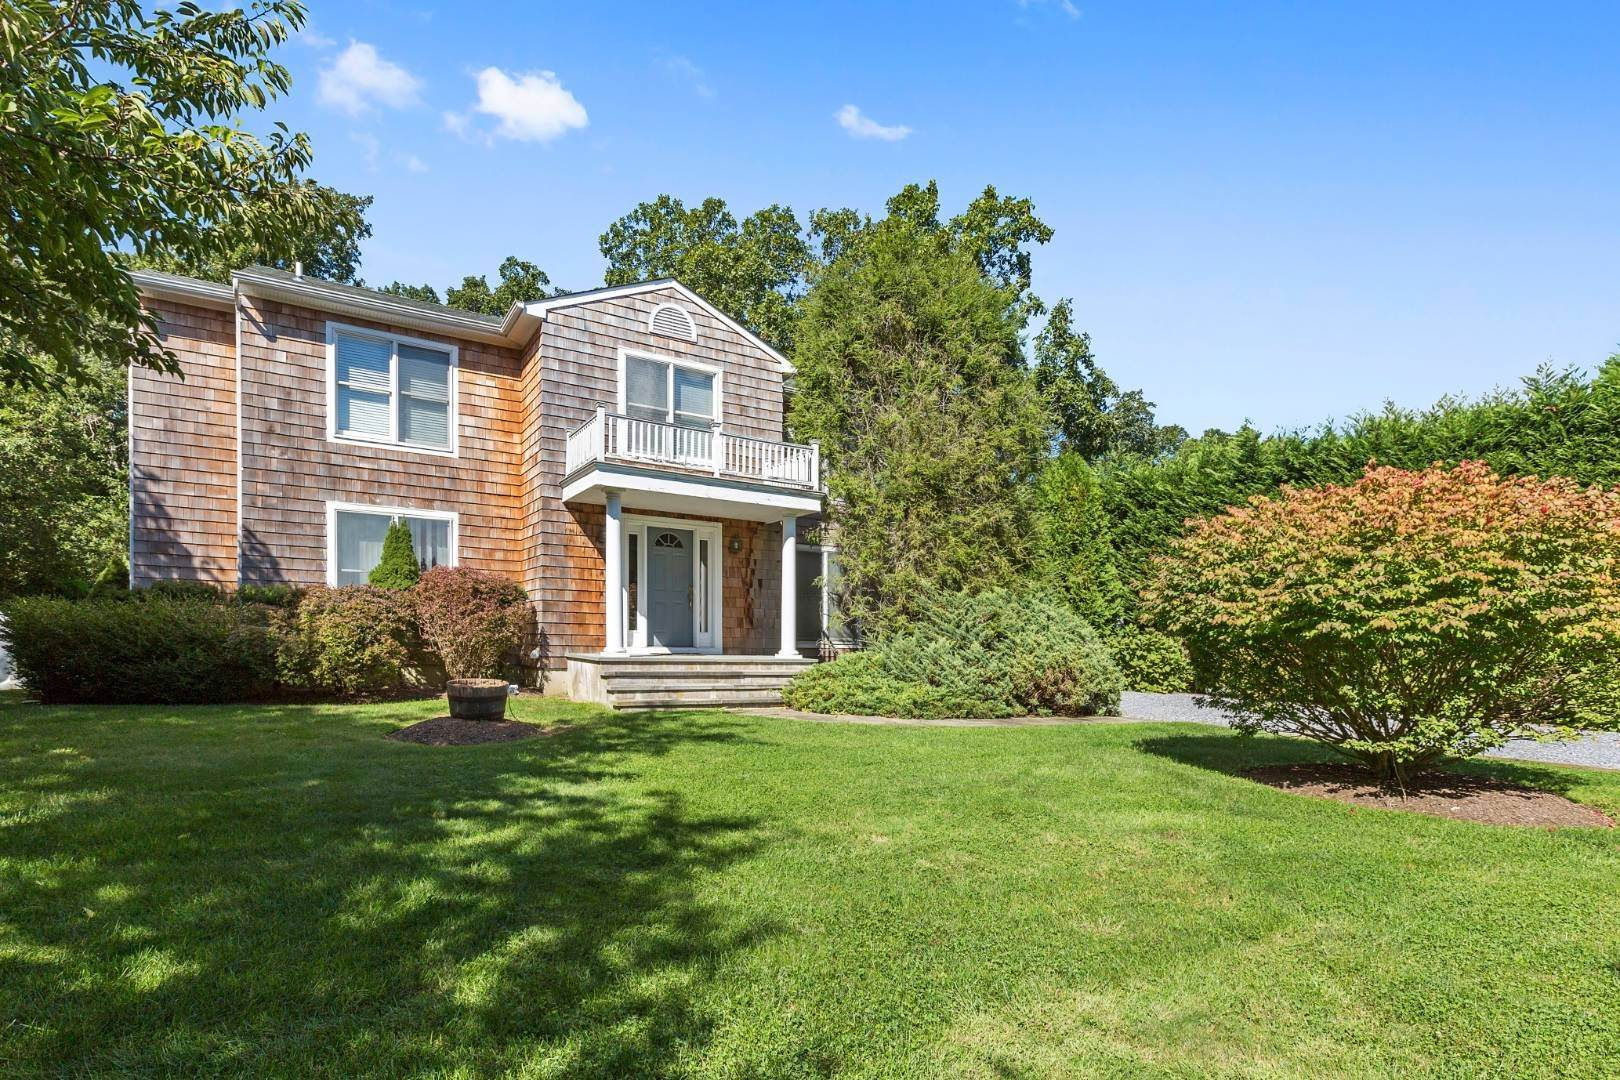 Single Family Home for Sale at Village Edge Traditional 19 Boxwood St, East Hampton, NY 11937